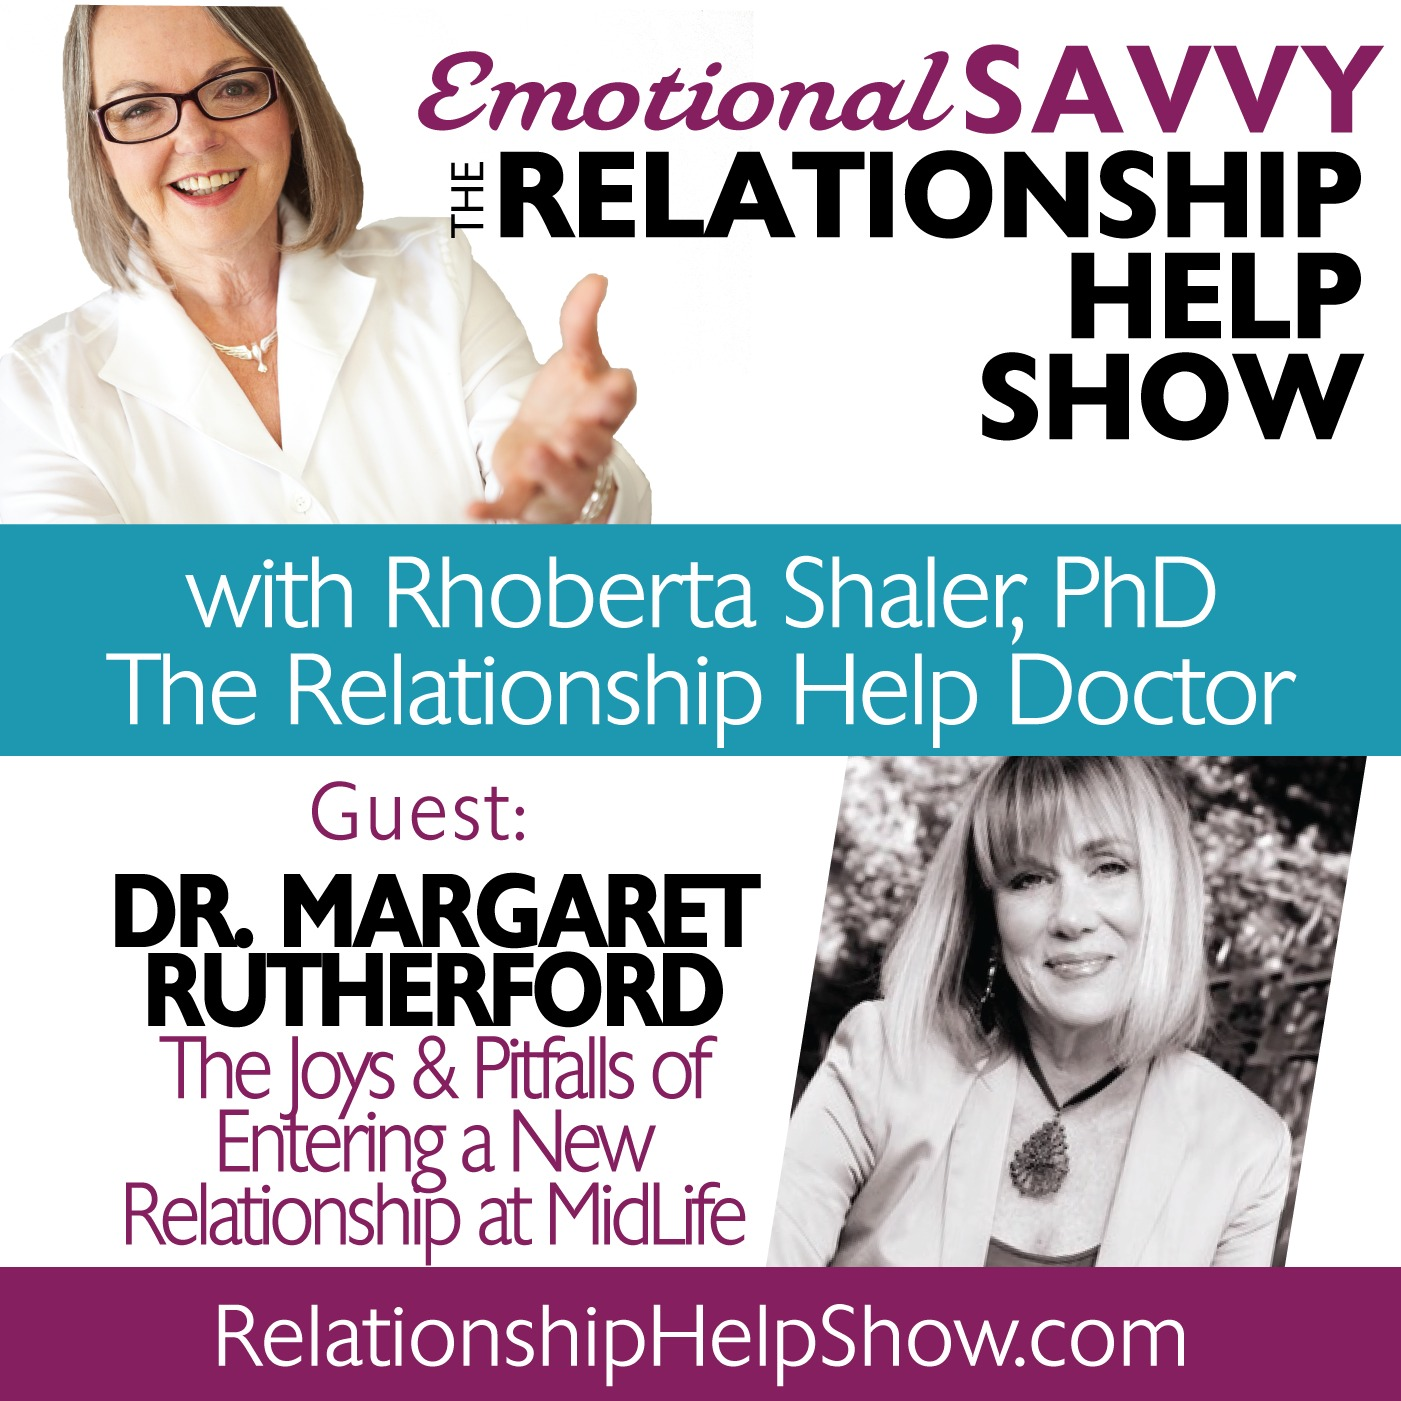 The Joys & Pitfalls of Entering a New Relationship at MidLife  GUEST: Dr. Margaret Rutherford